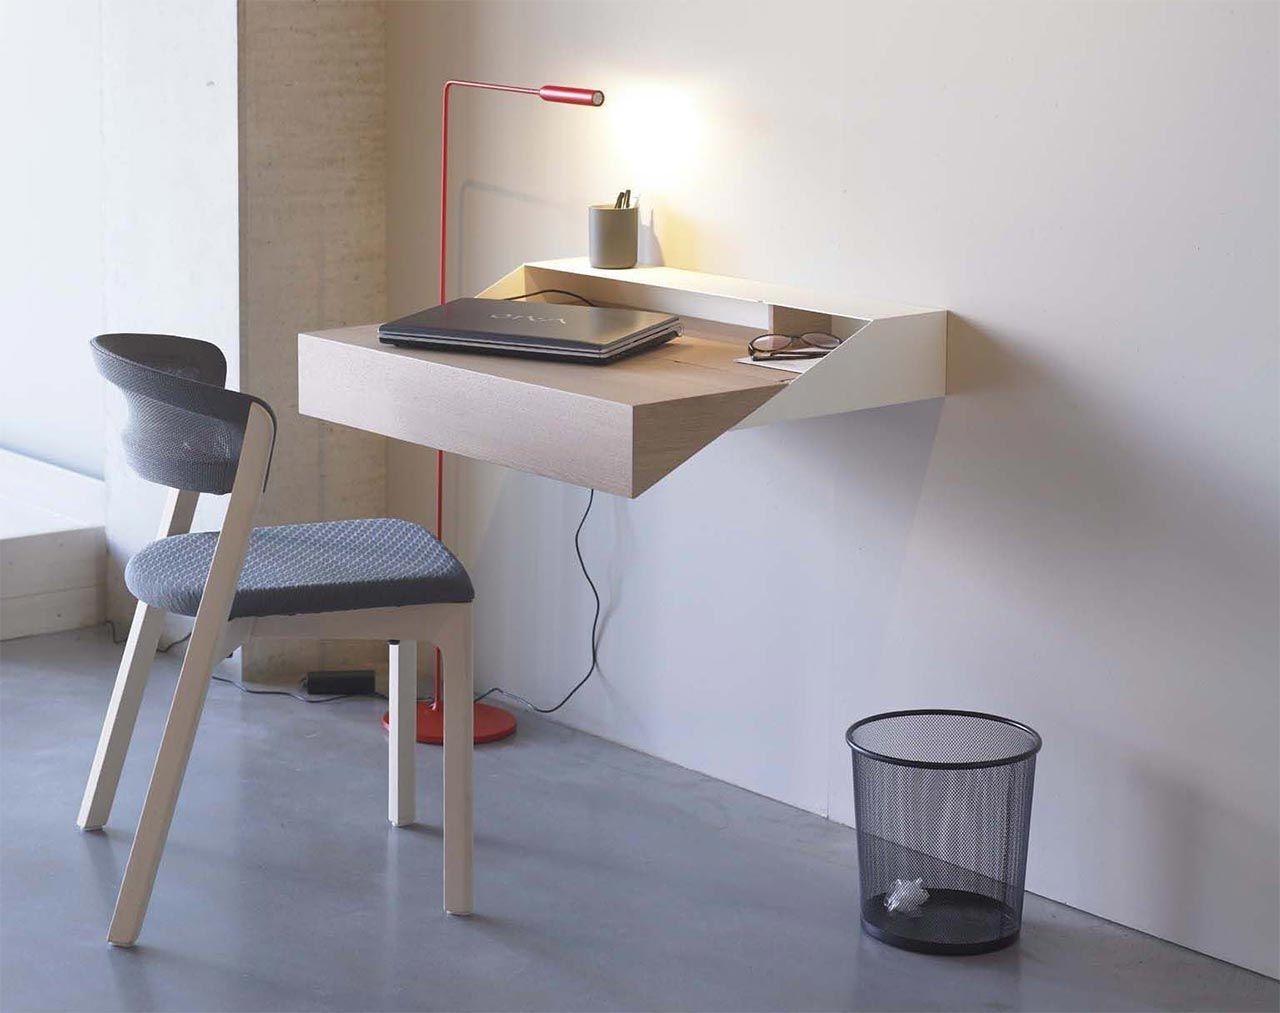 8 Space Saving And Style Saving Pieces Furniture Table Design Desk